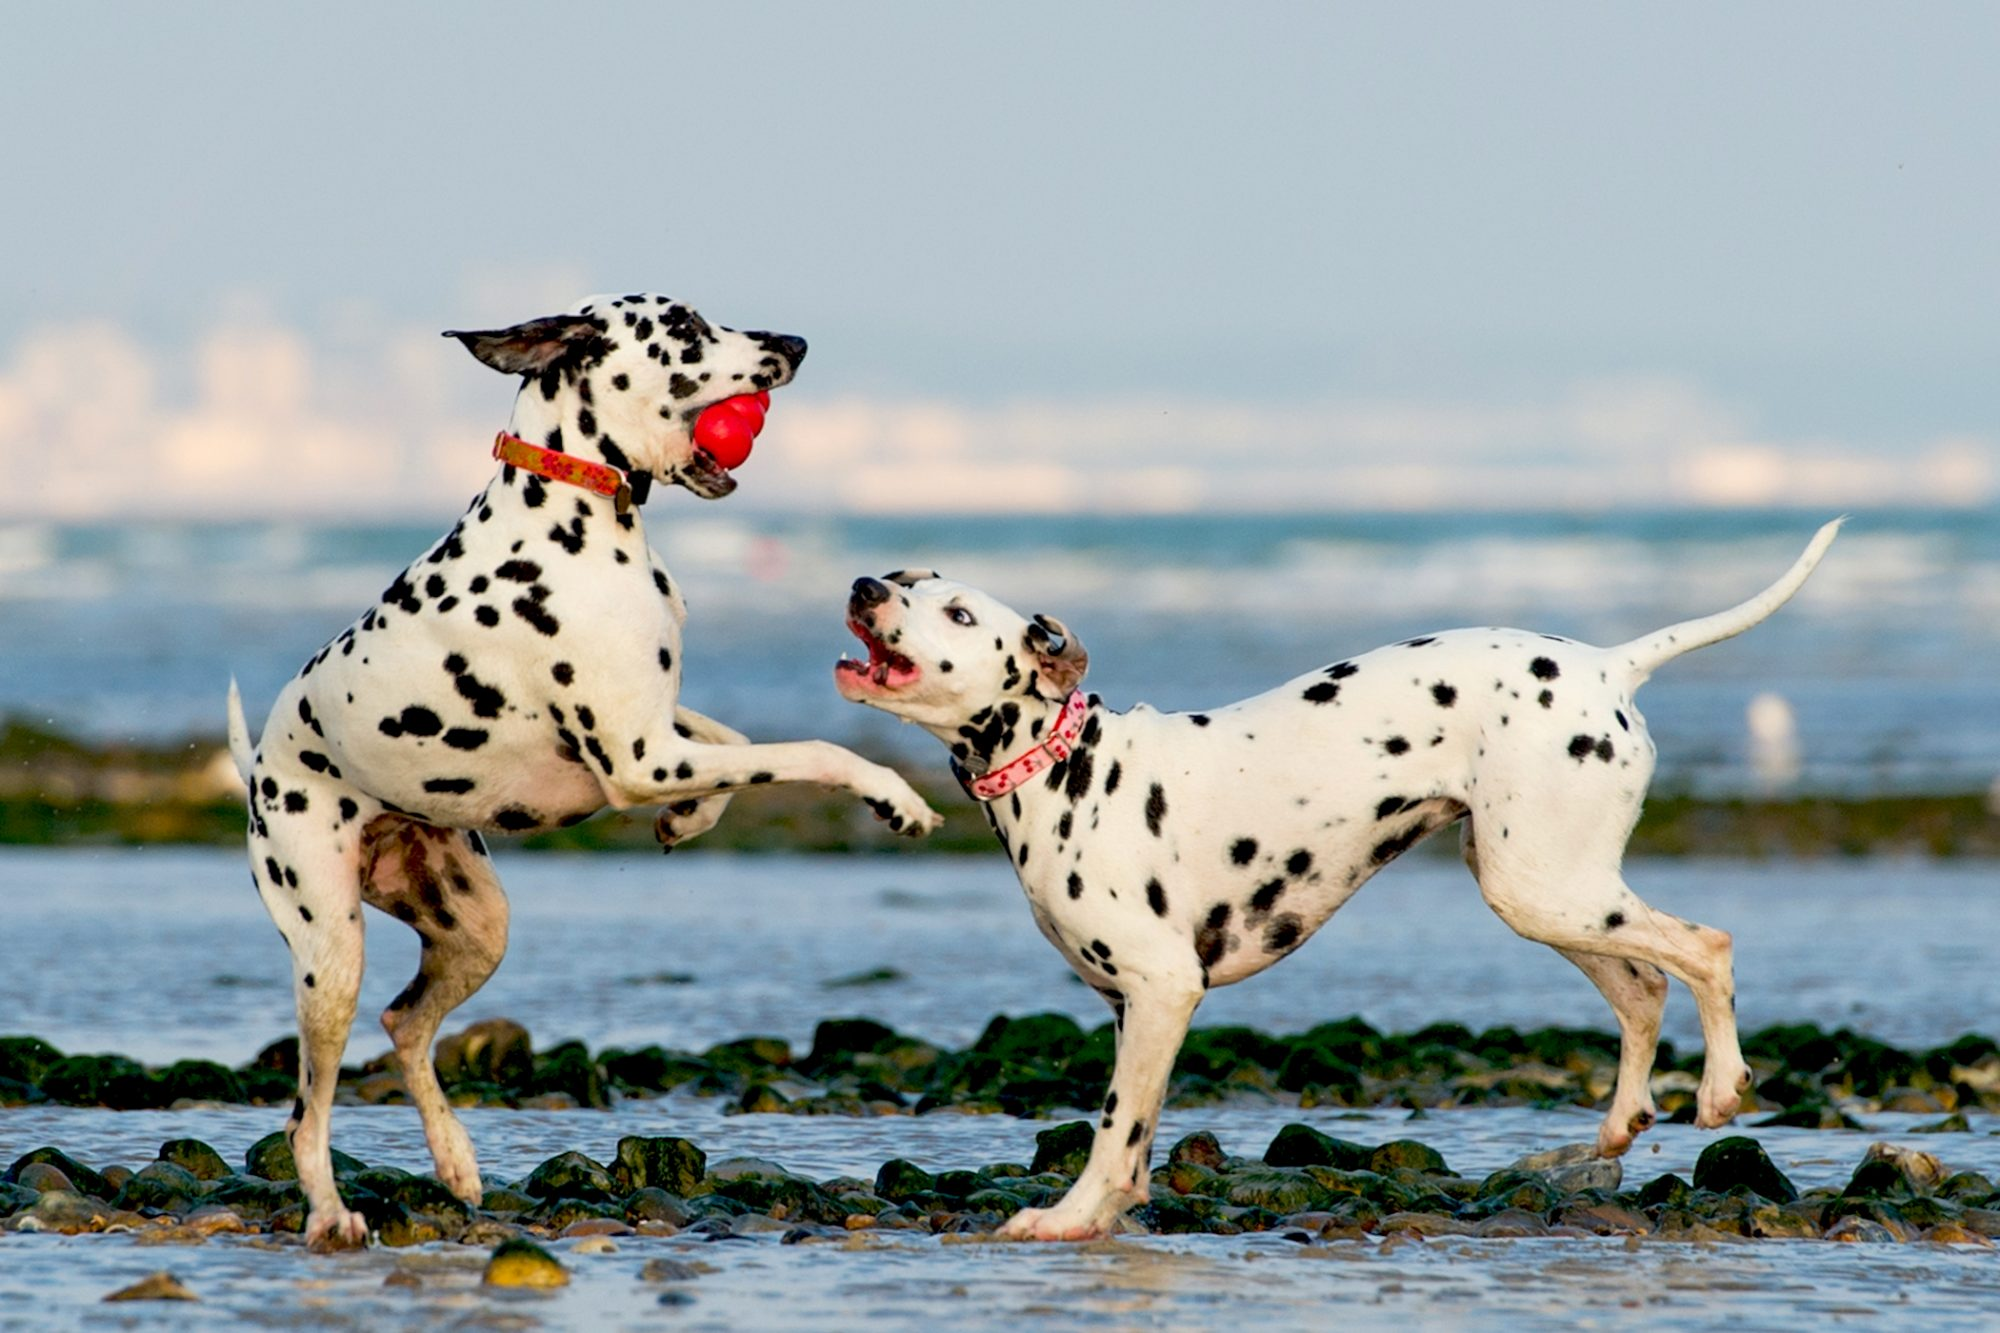 two Dalmatians playing on a rocky beach with a red toy